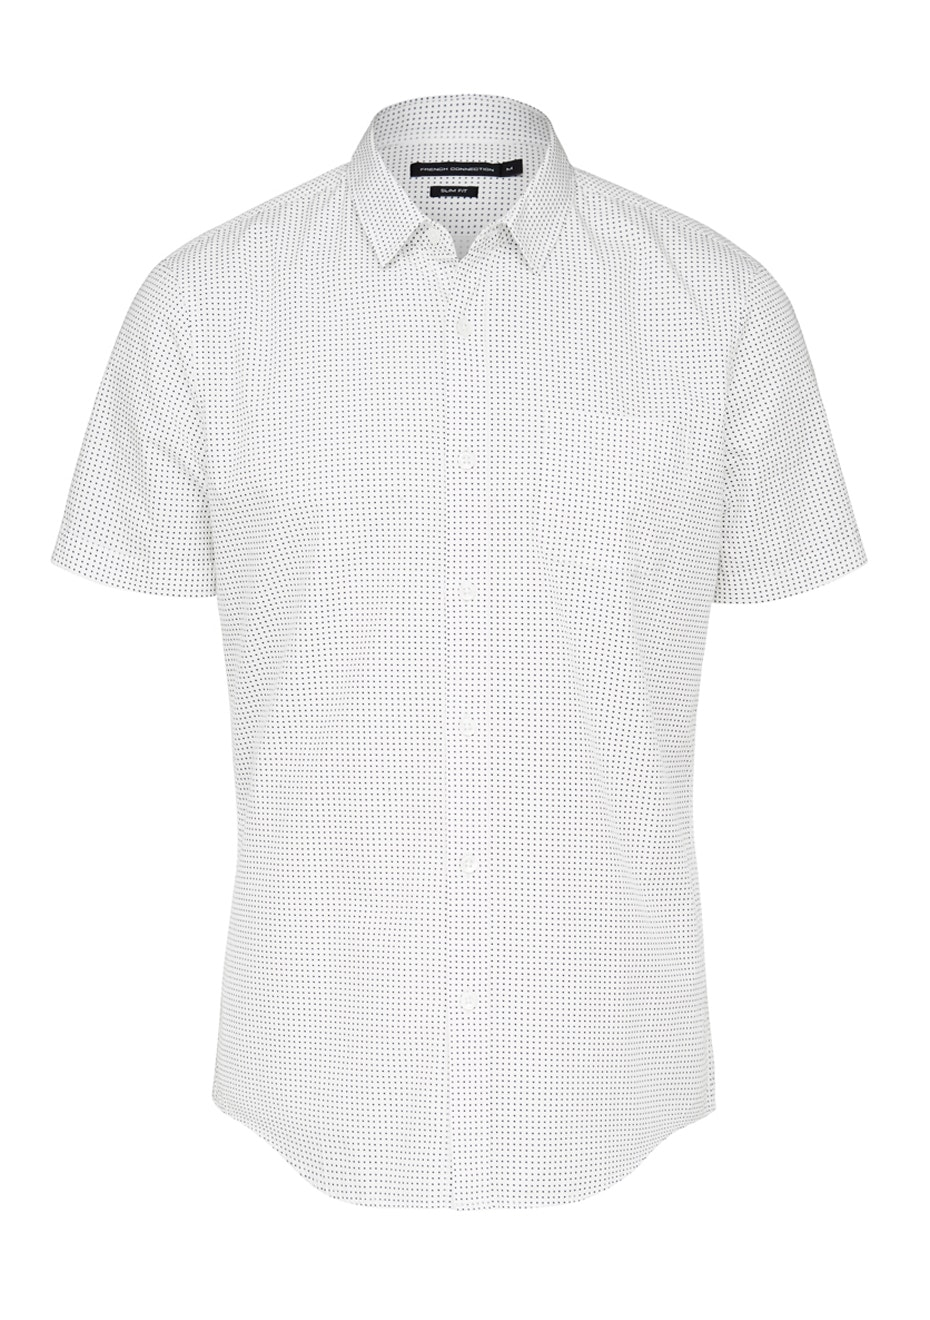 French Connection - Star S/S Slim Fit Shirt - White